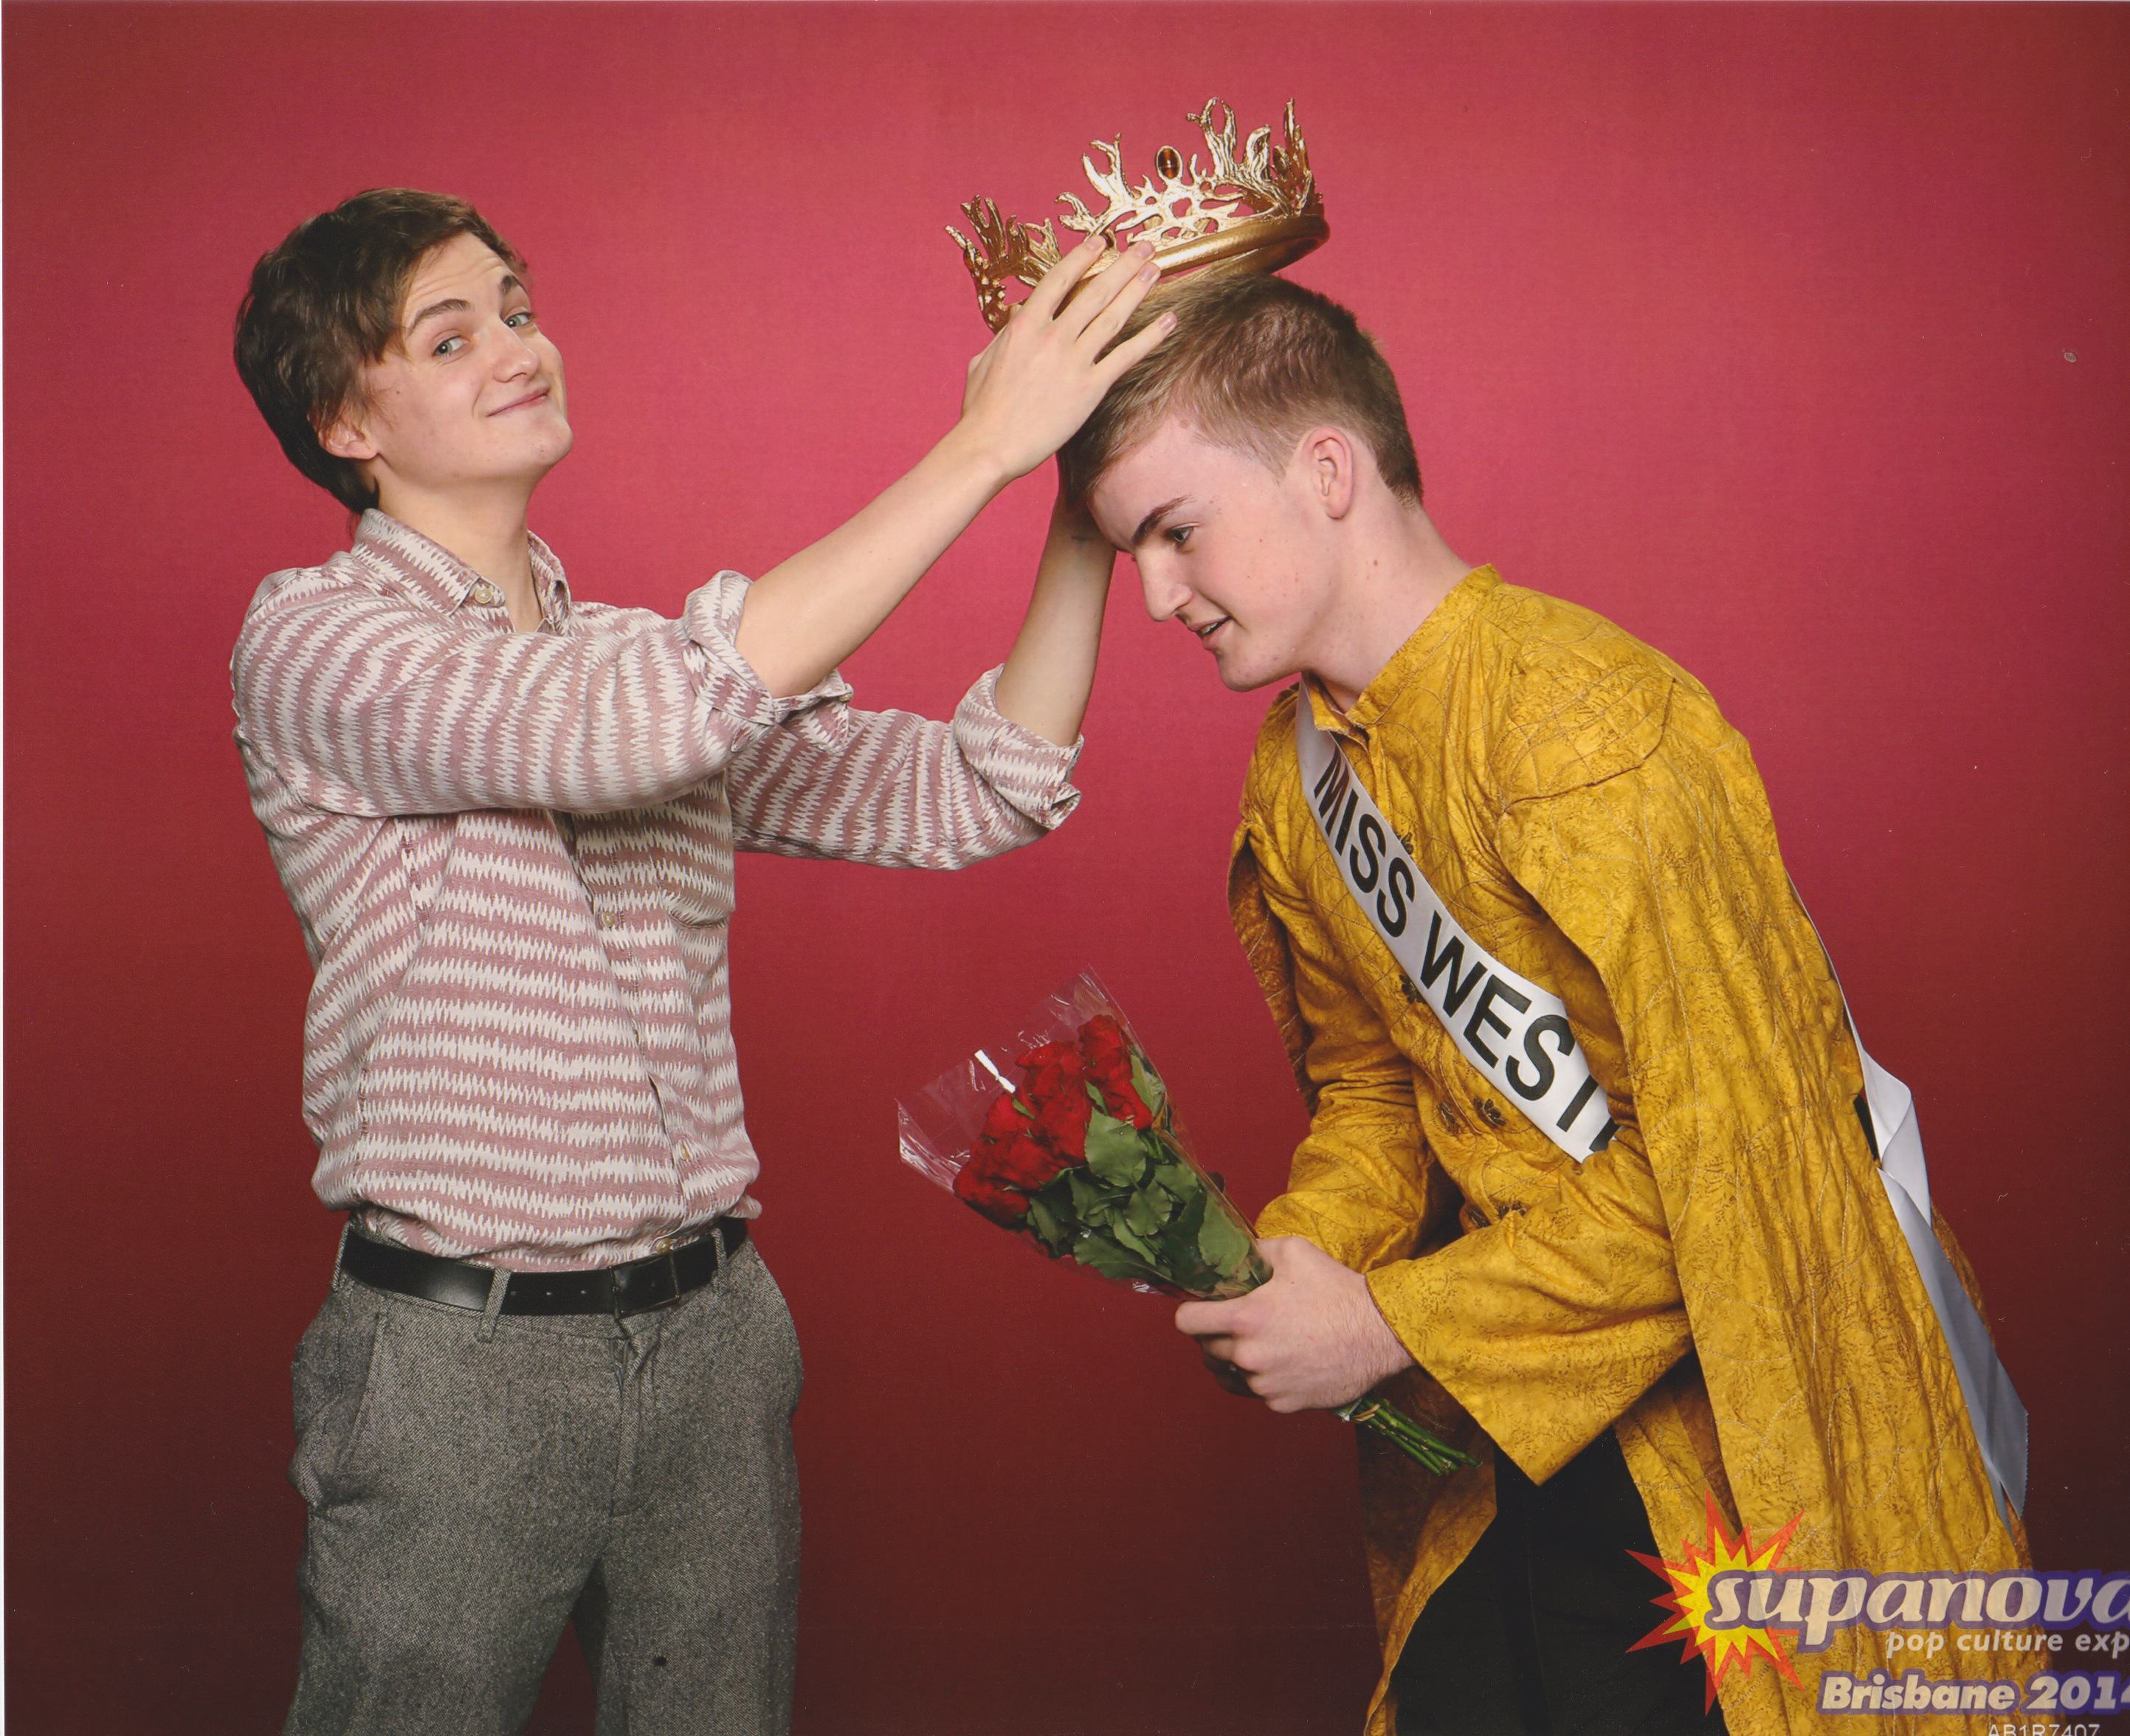 Lad That Looks Identical To King Joffrey Meets The Real Deal %name